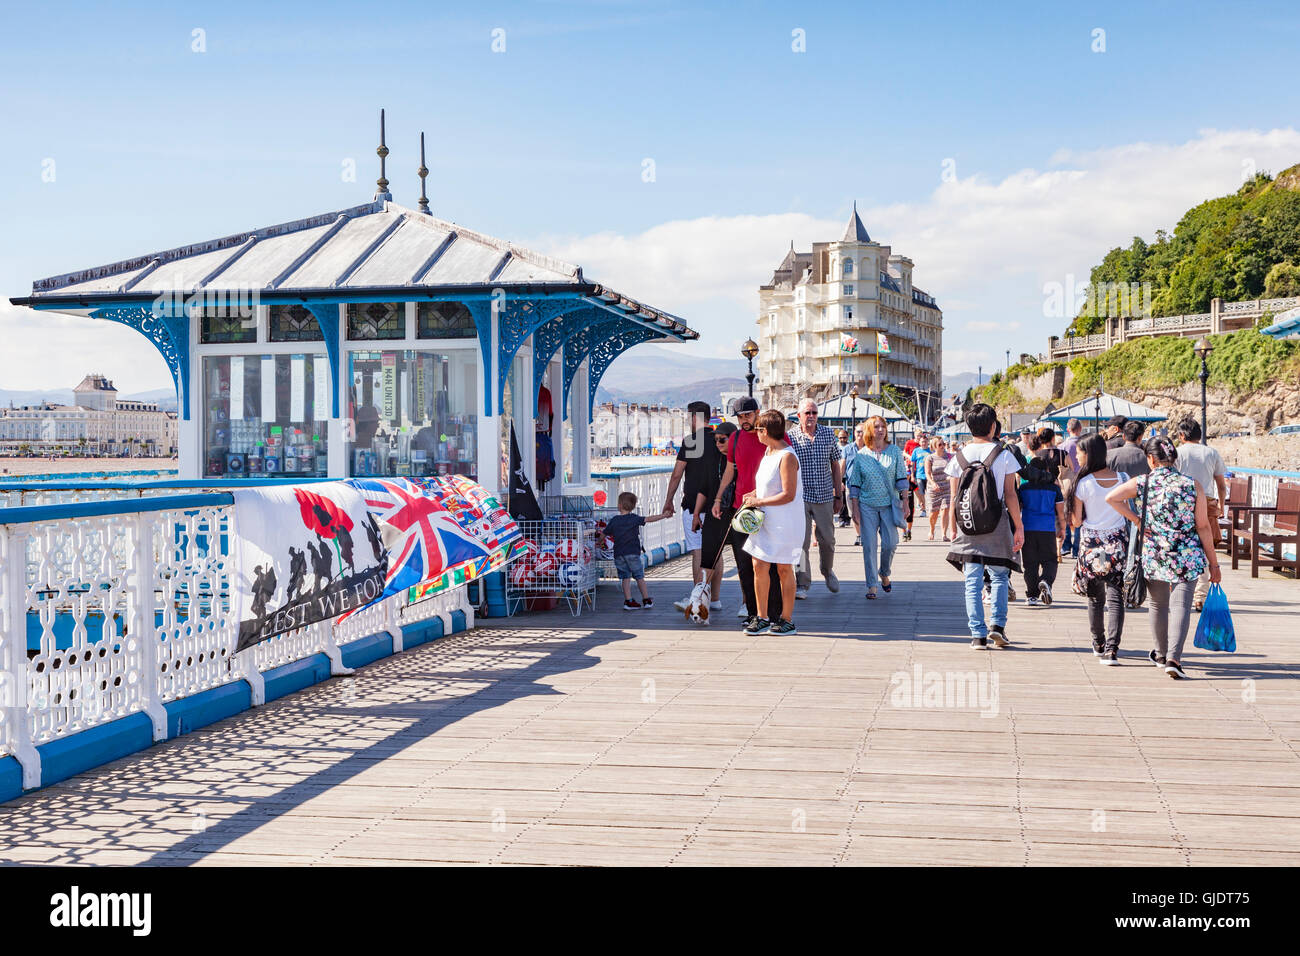 Llandudno, Conwy Wales, UK. 15th Aug, 2016. Summer finally arrives on the North Wales coast, and everyone gets out - Stock Image